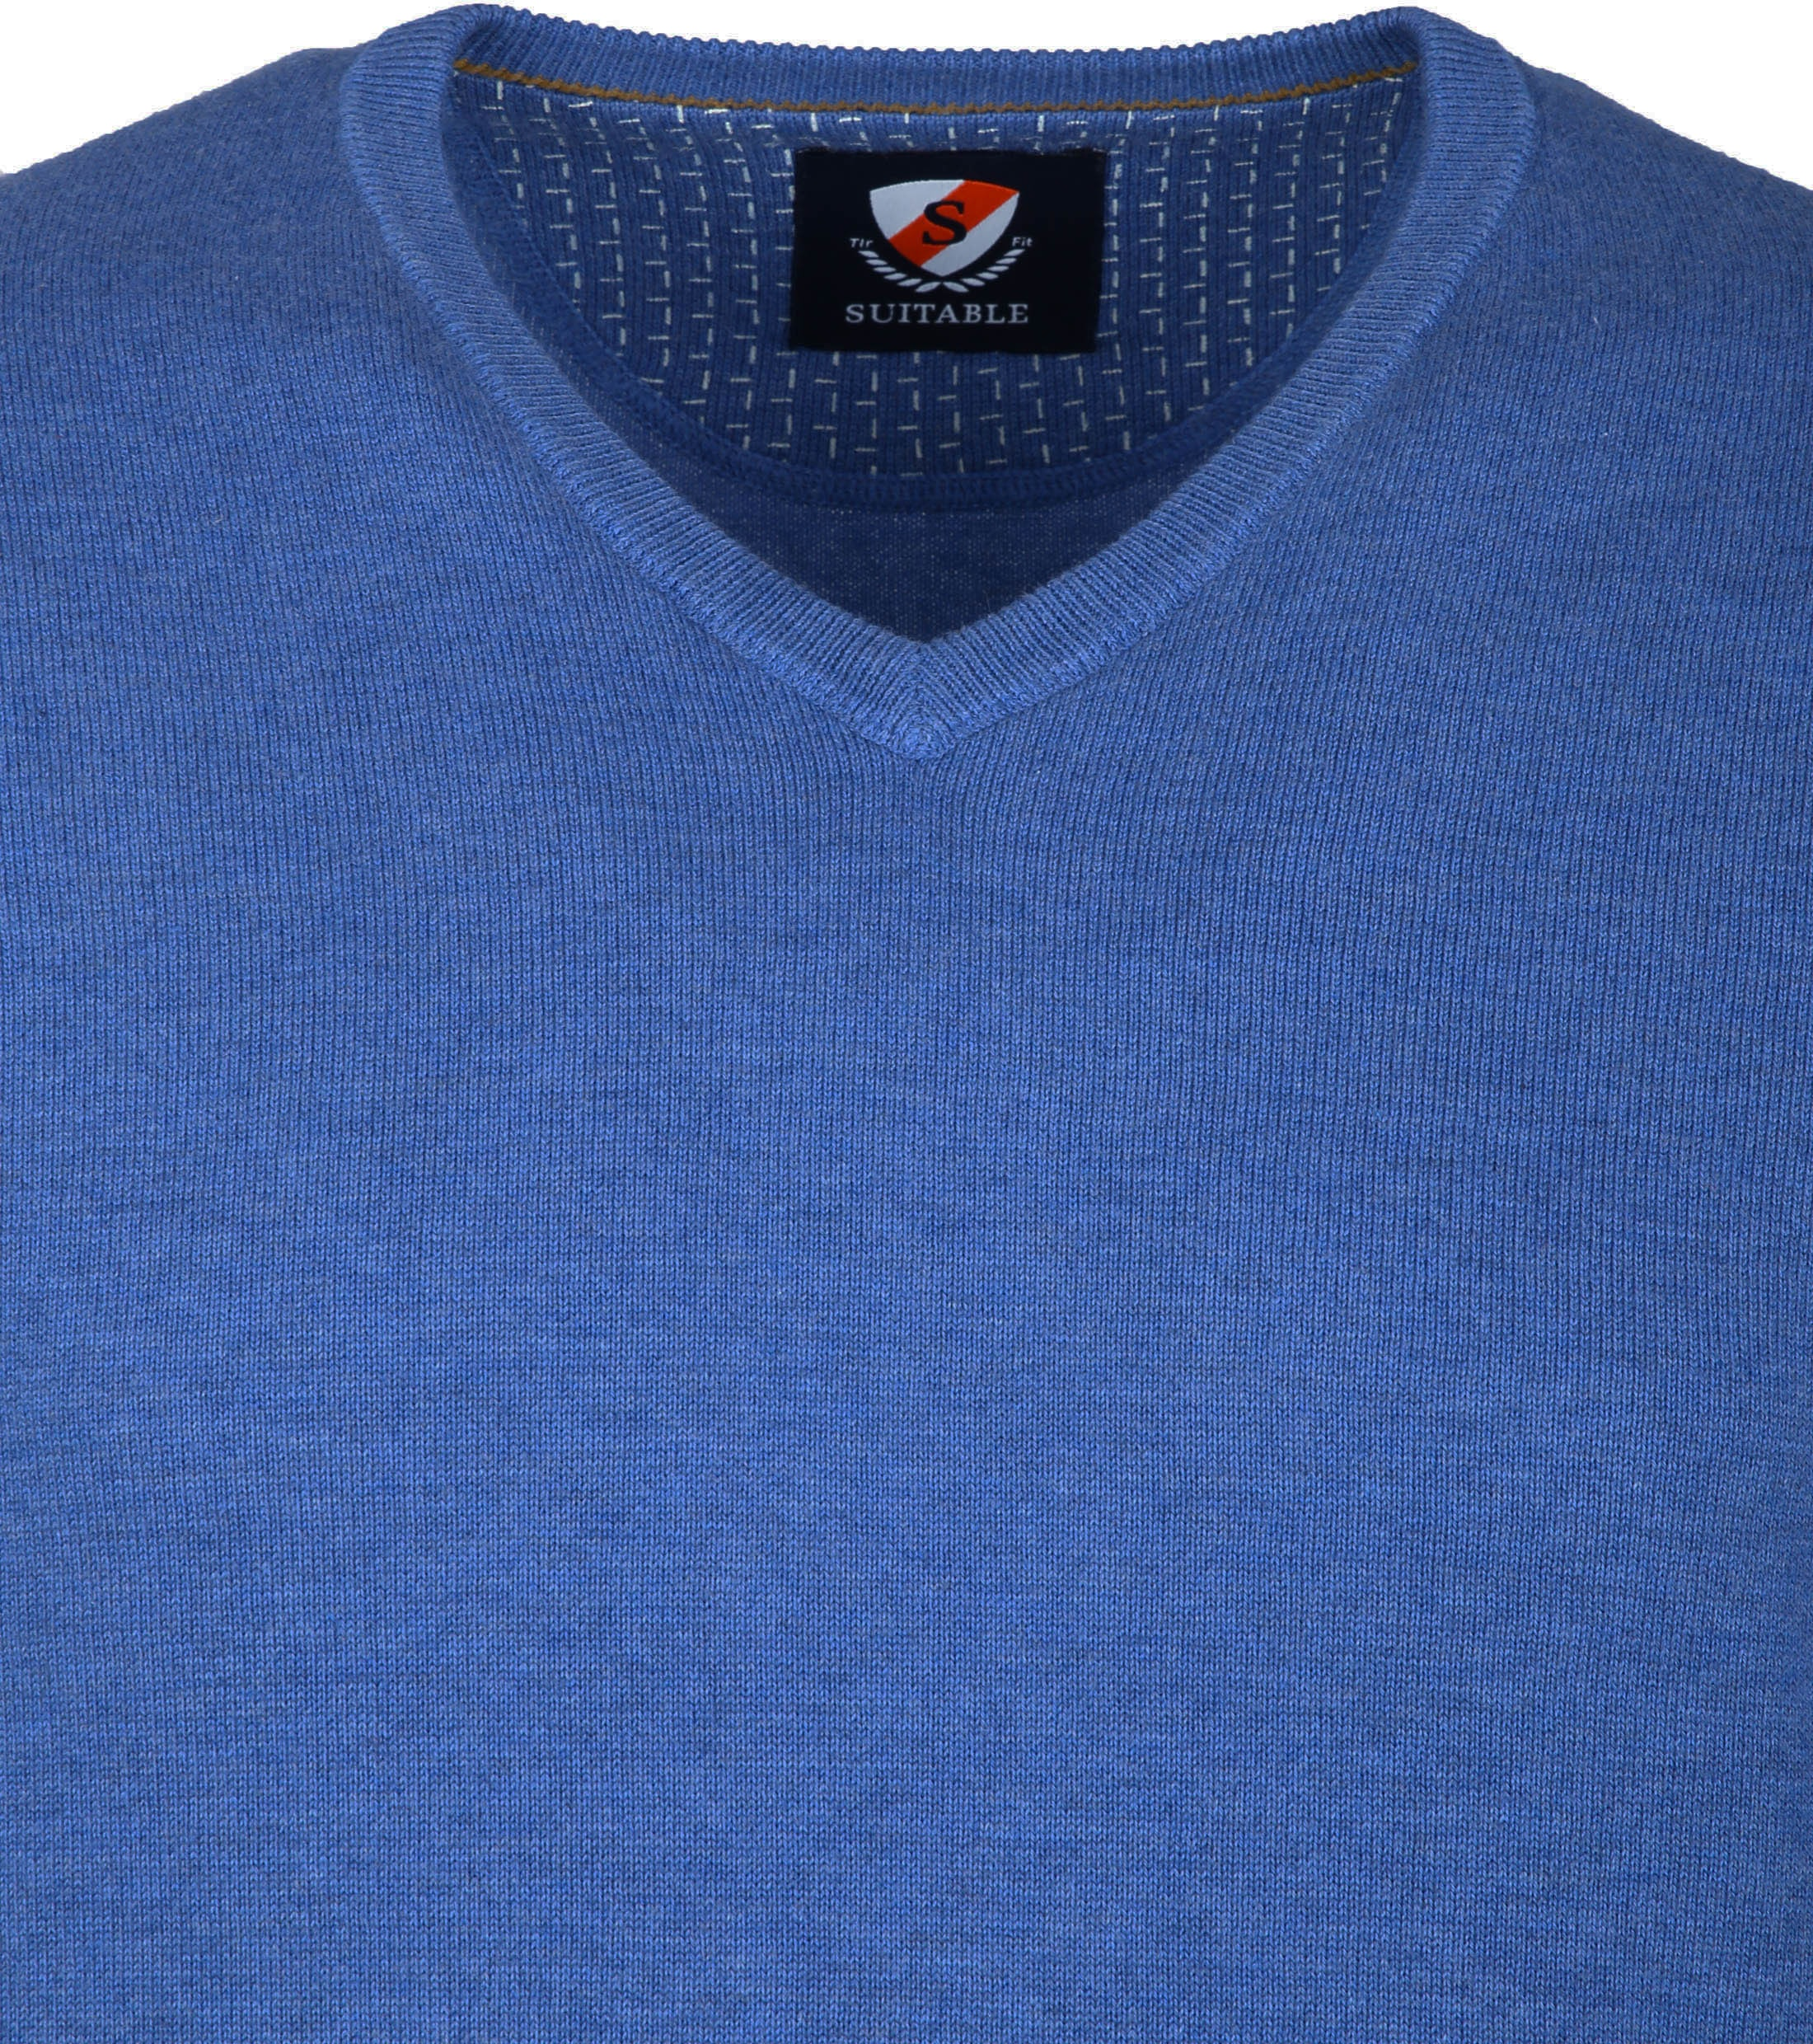 Suitable Vini Pullover Cobalt foto 1